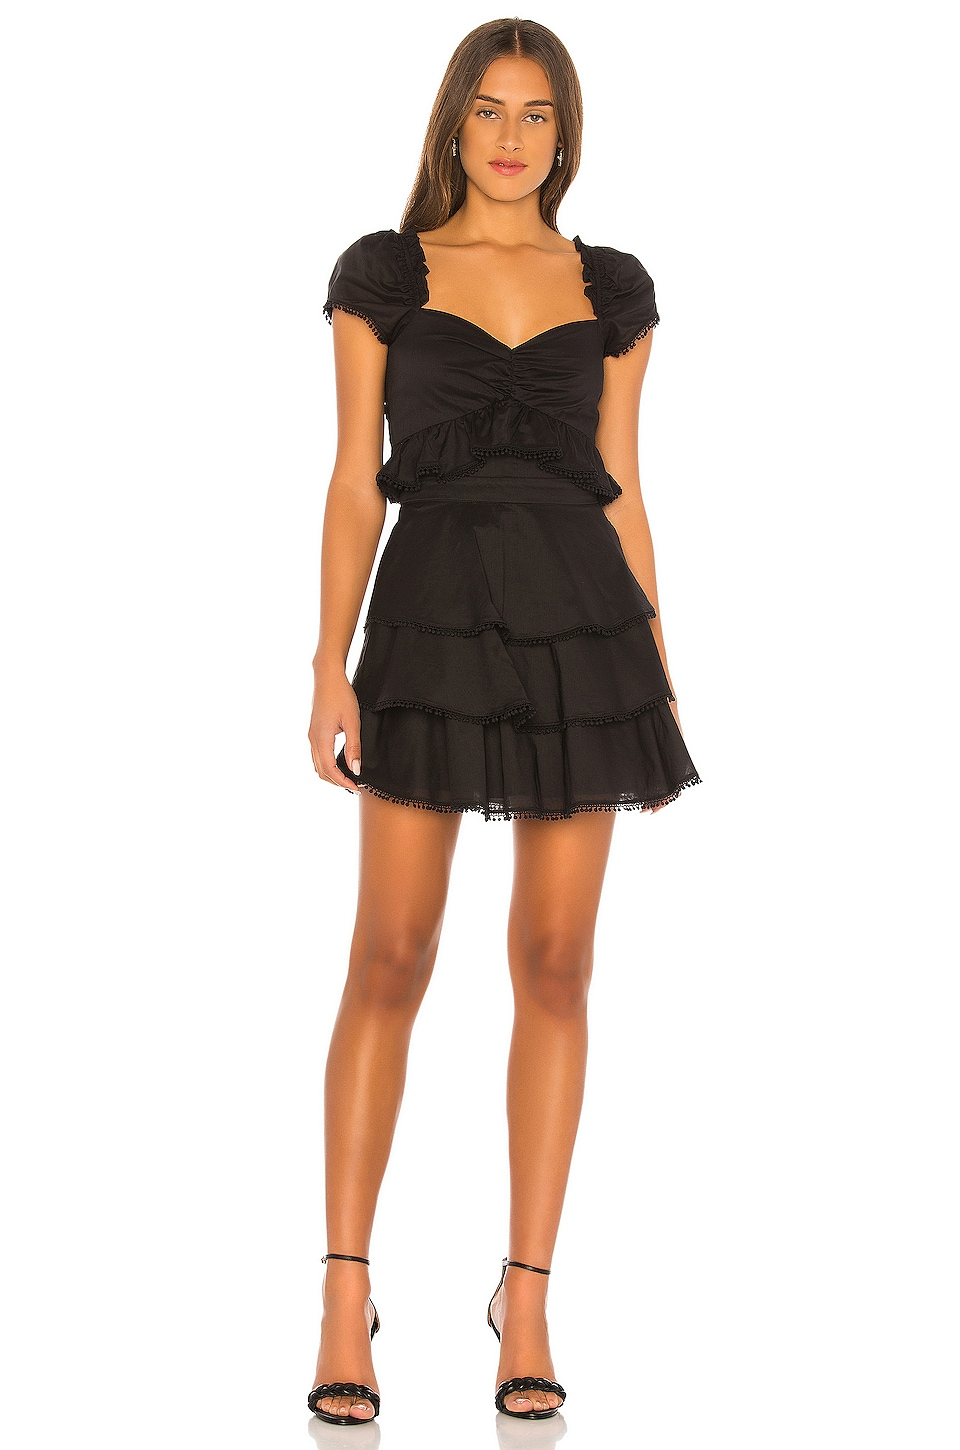 MAJORELLE Summer Nights Dress in Black